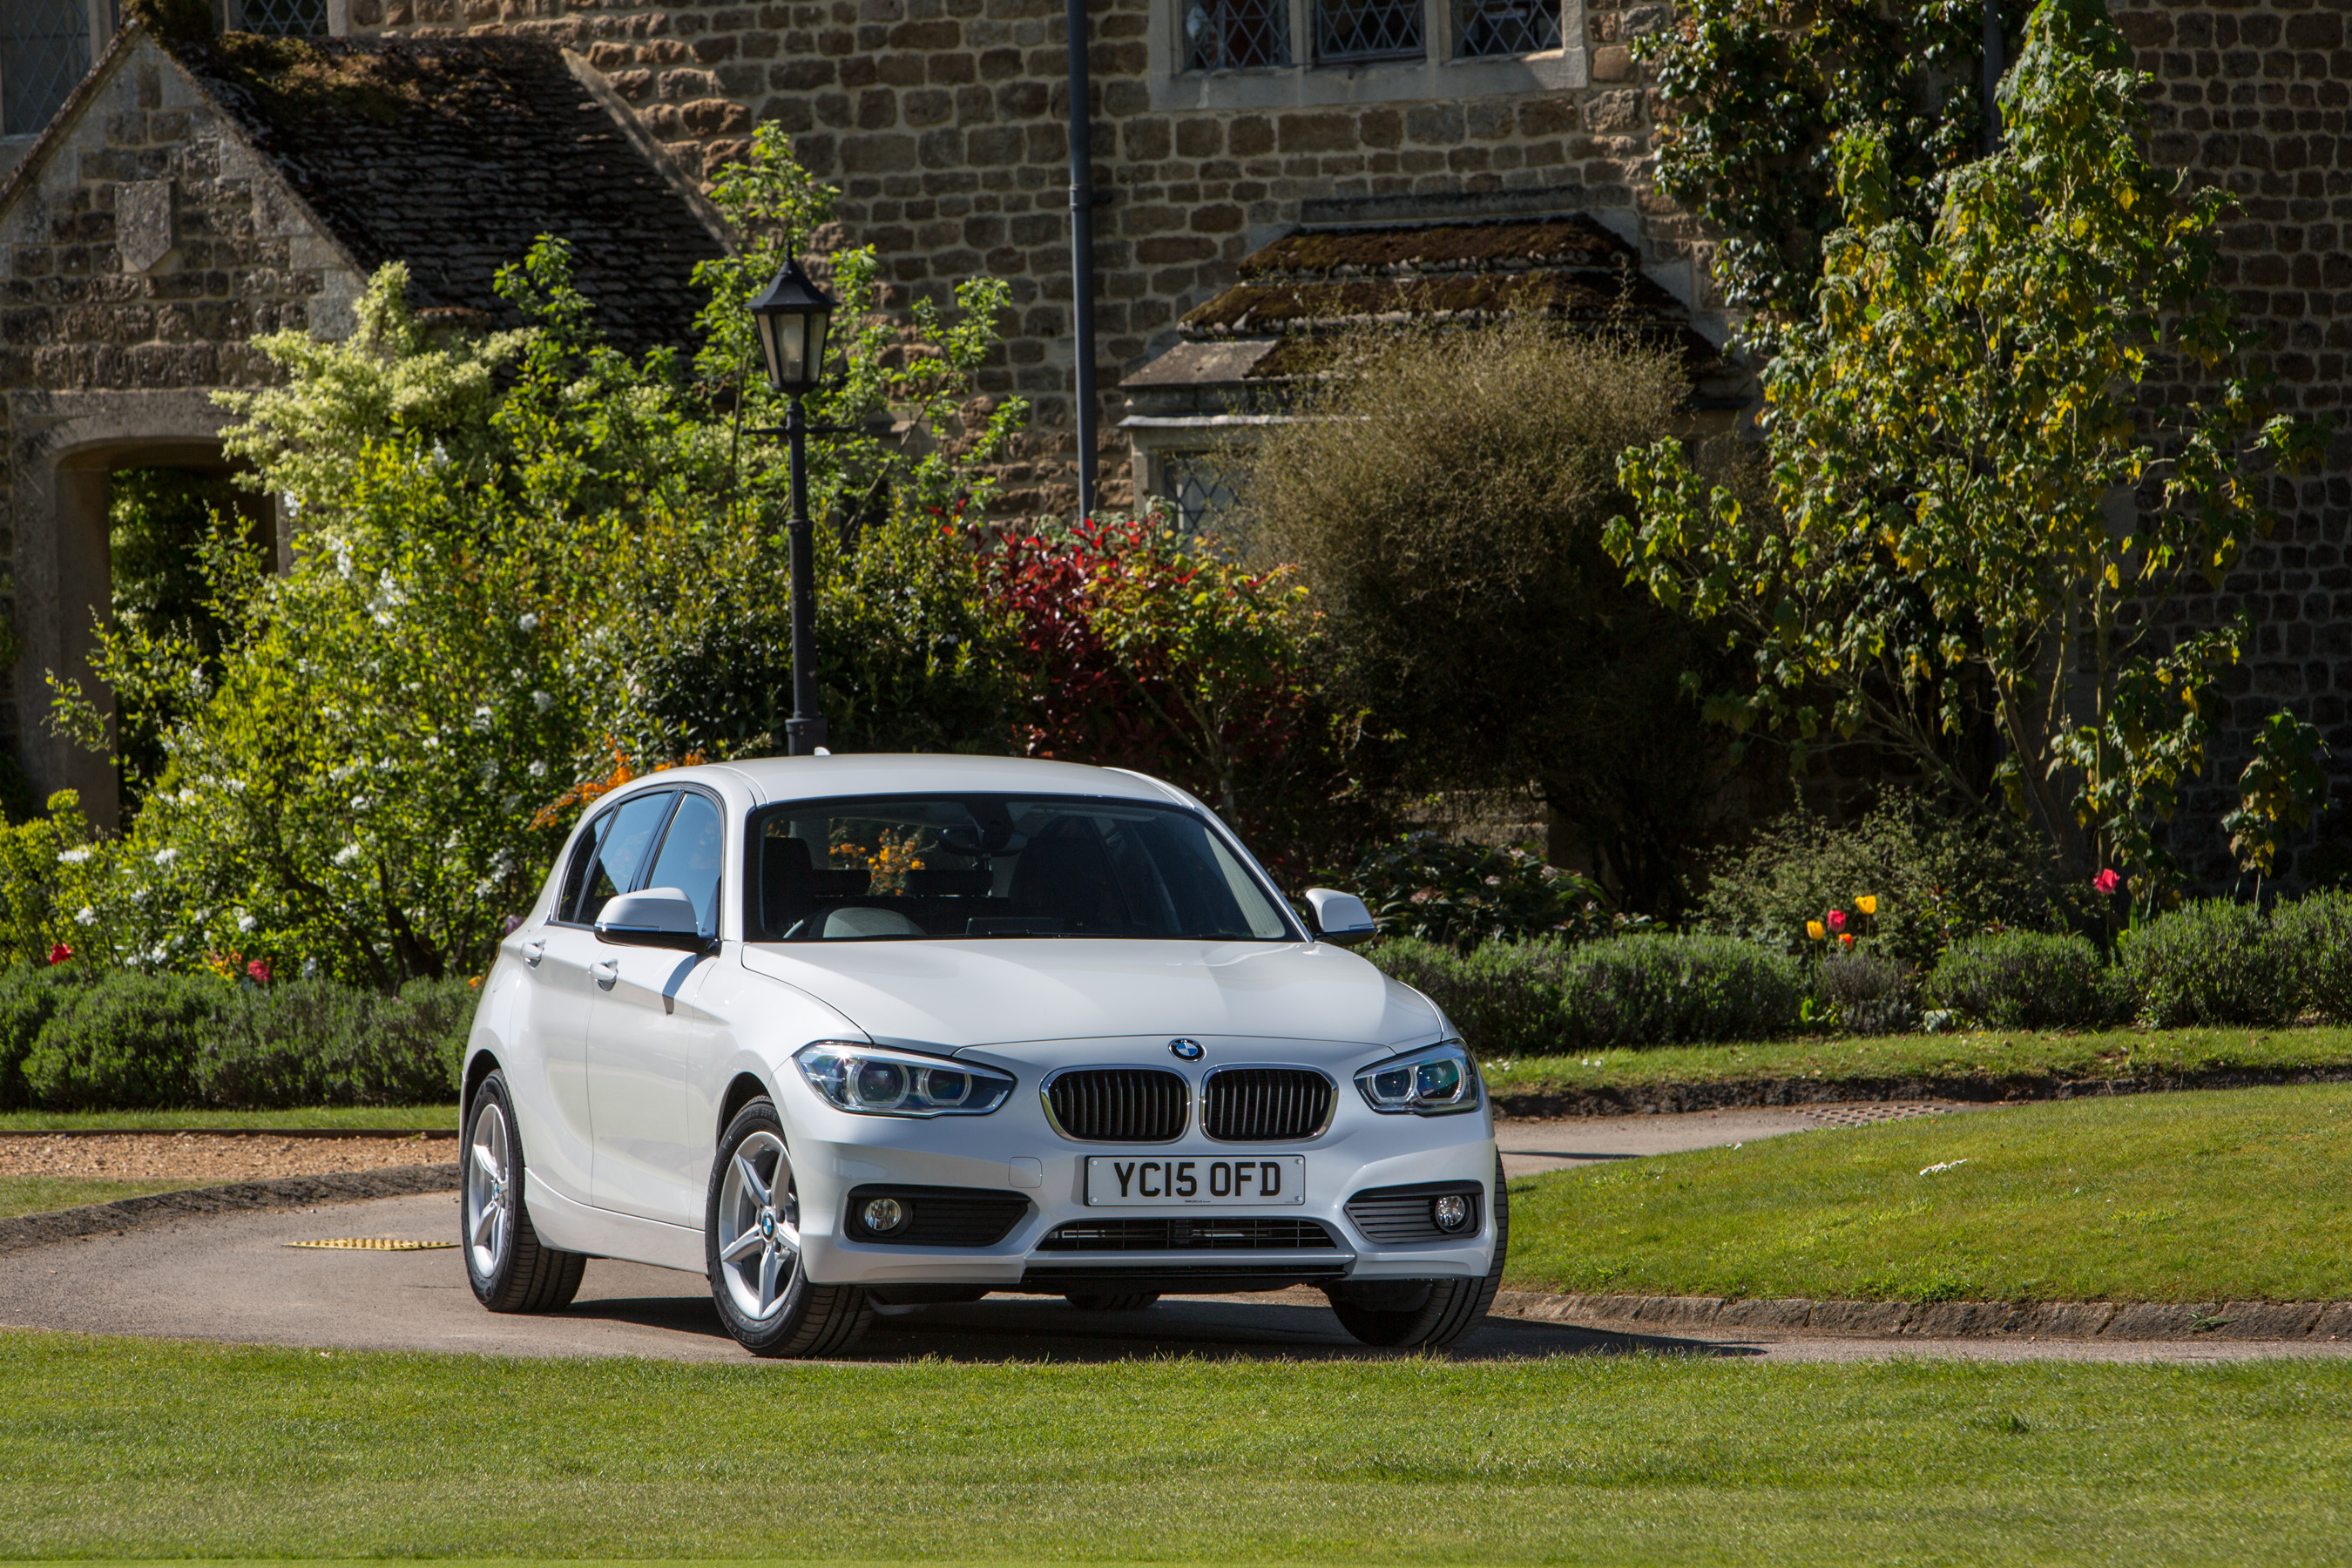 BMW has made the 1-series brilliant on B-roads, but not so great everywhere else